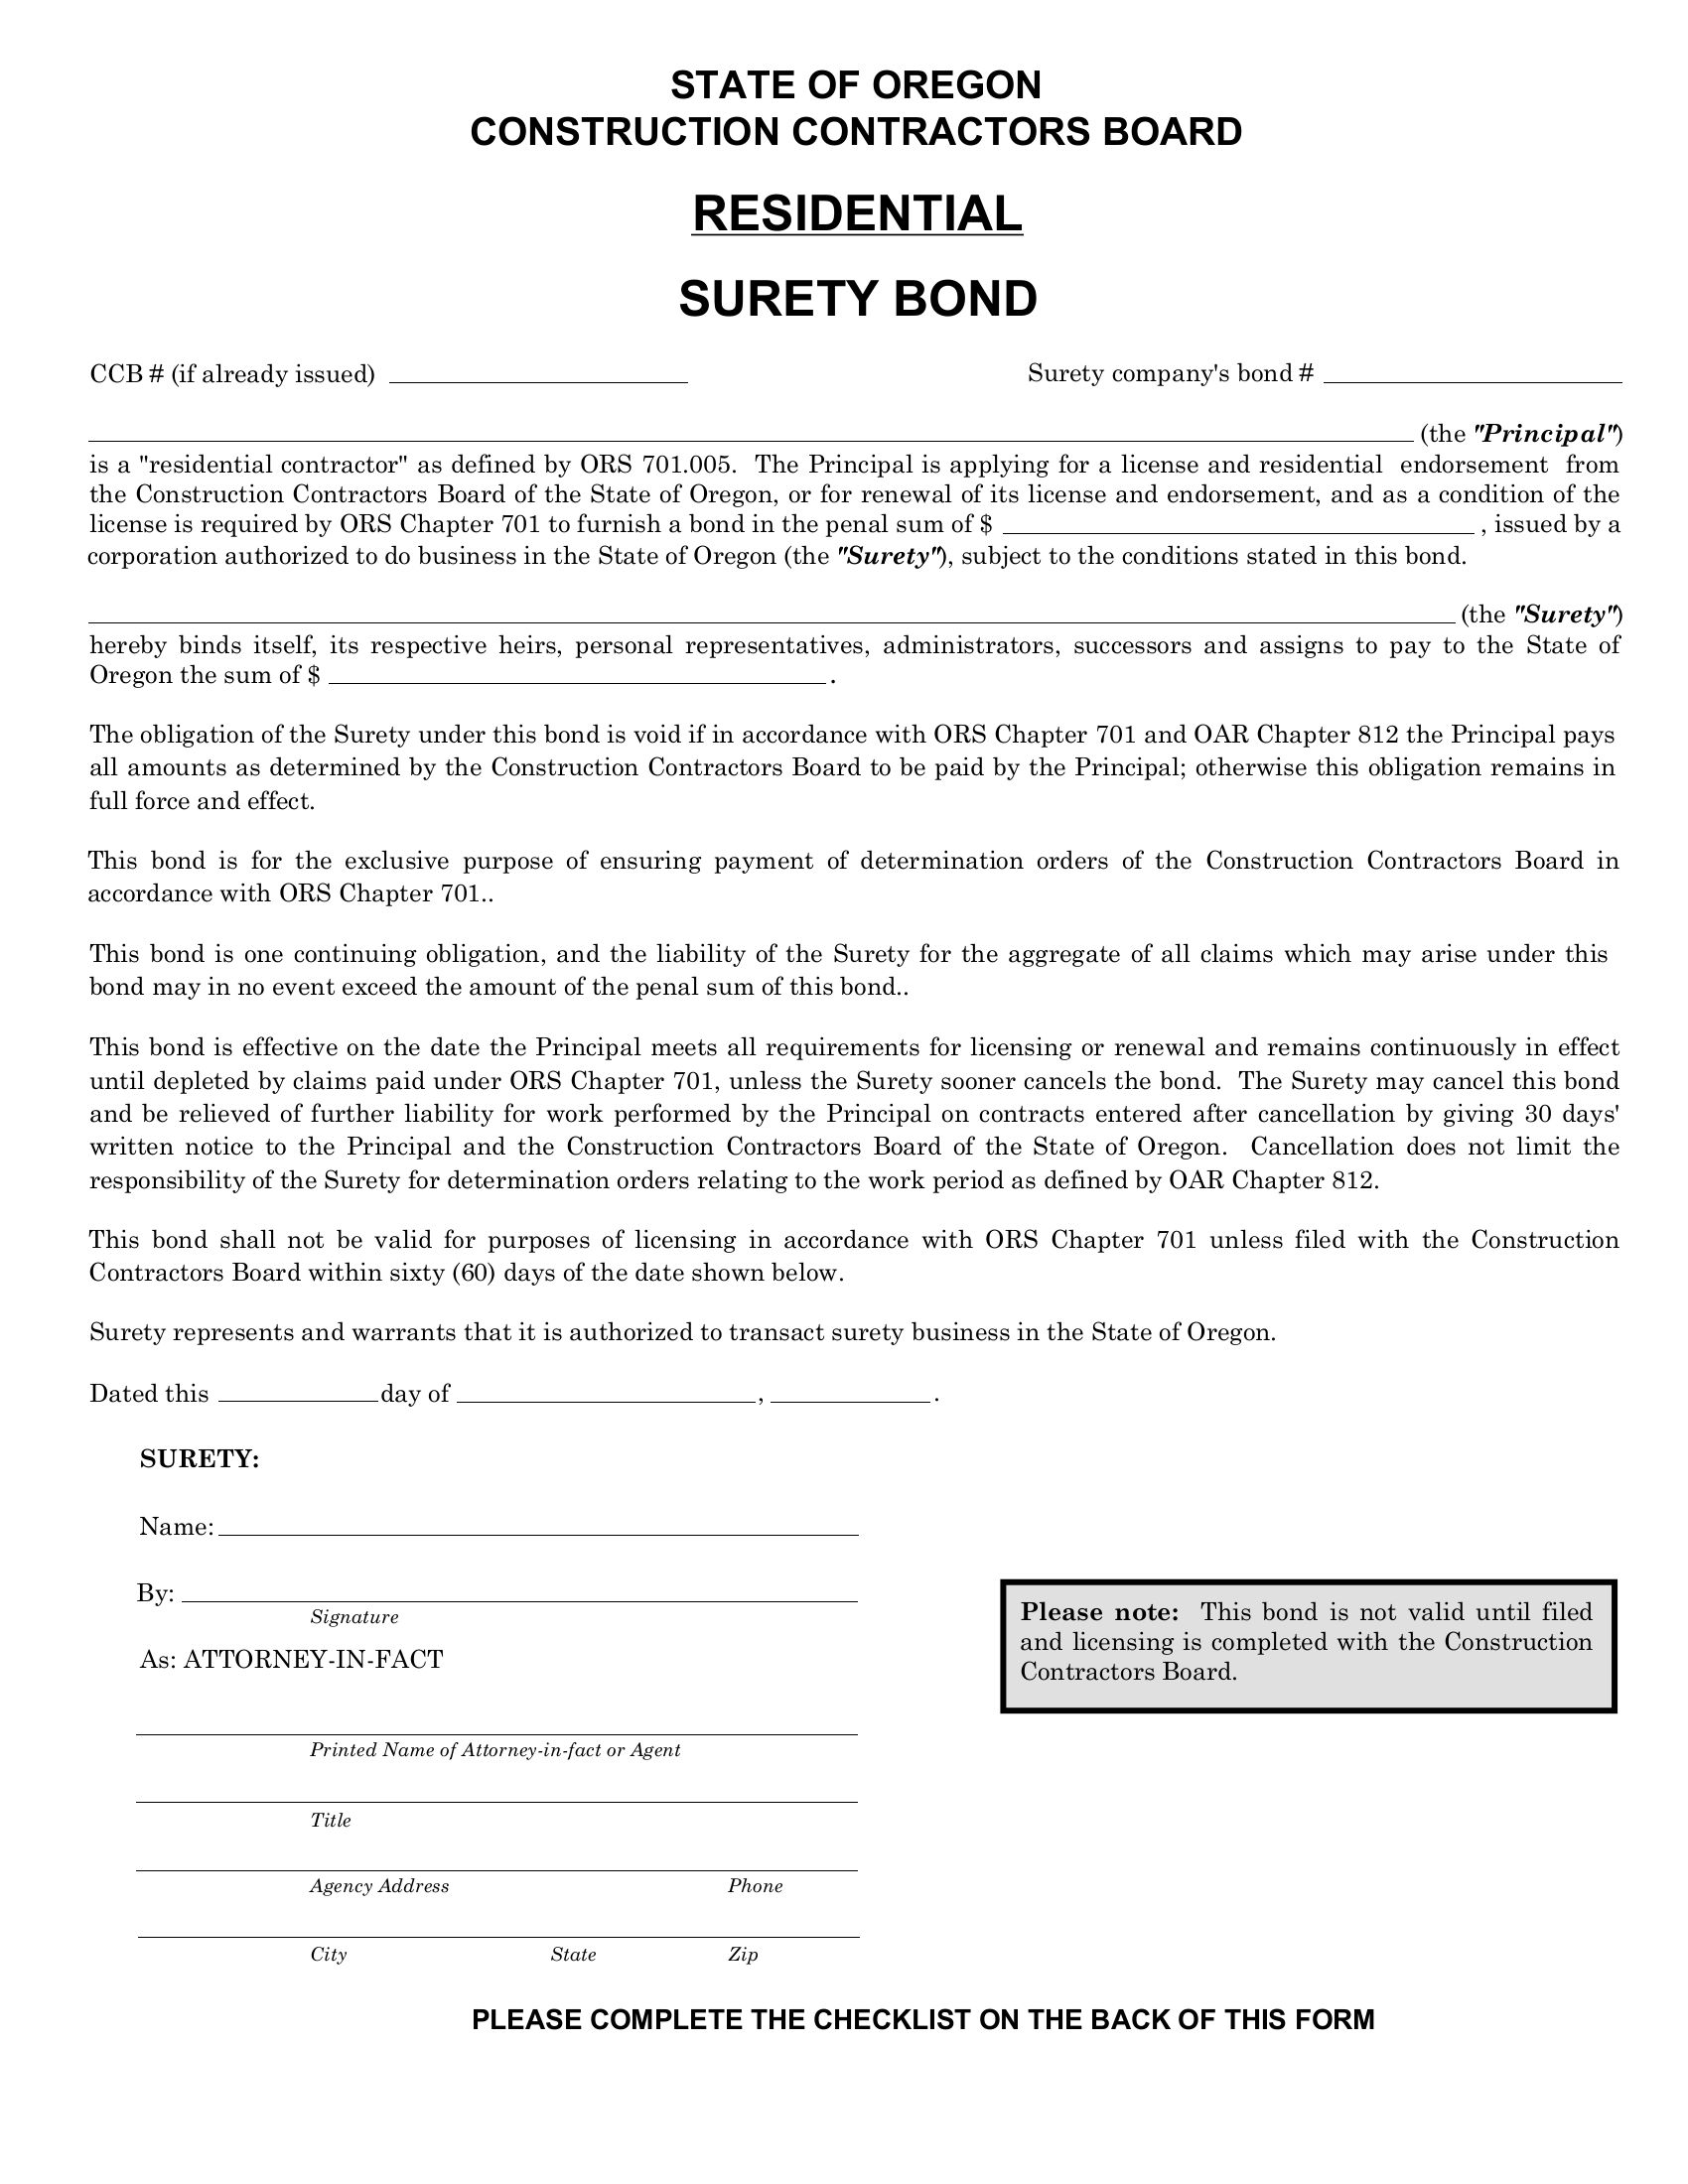 Contractors License Residential Bond sample image